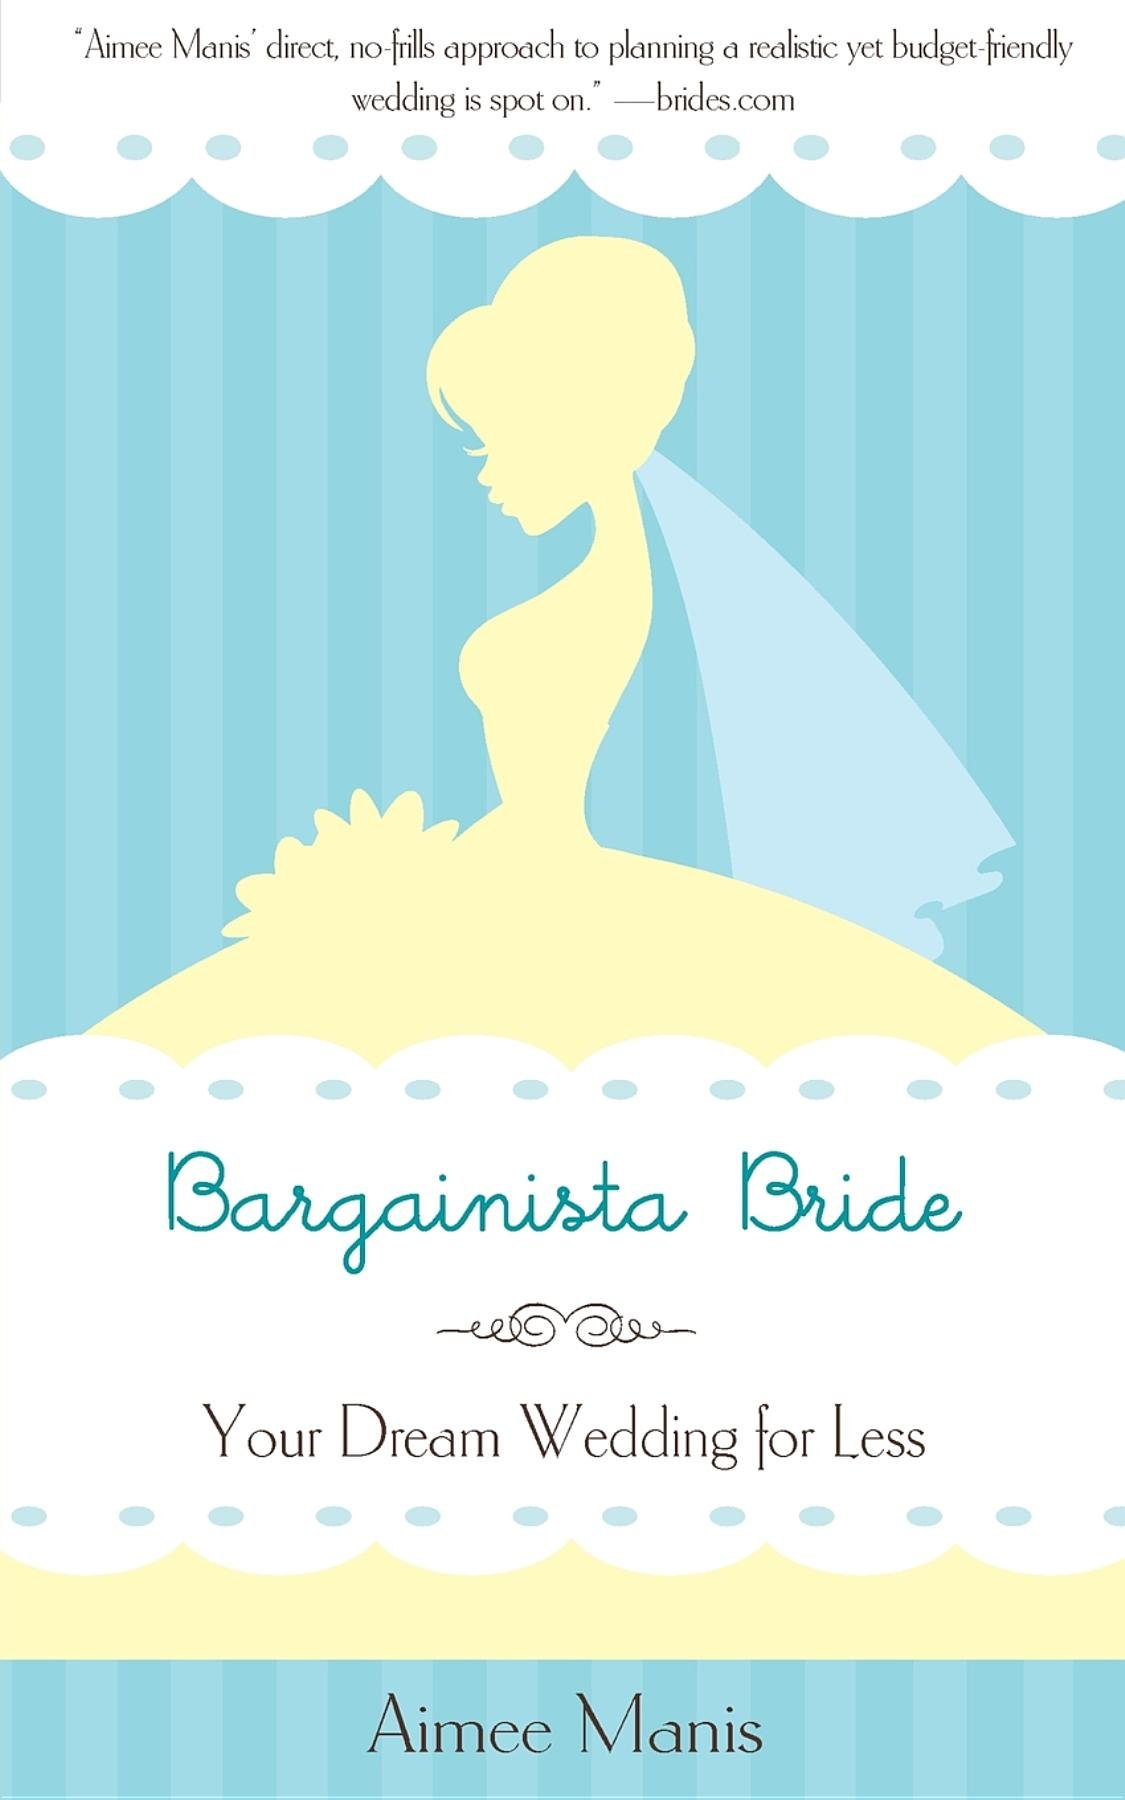 Bargainista Bride: Your Dream Wedding for Less